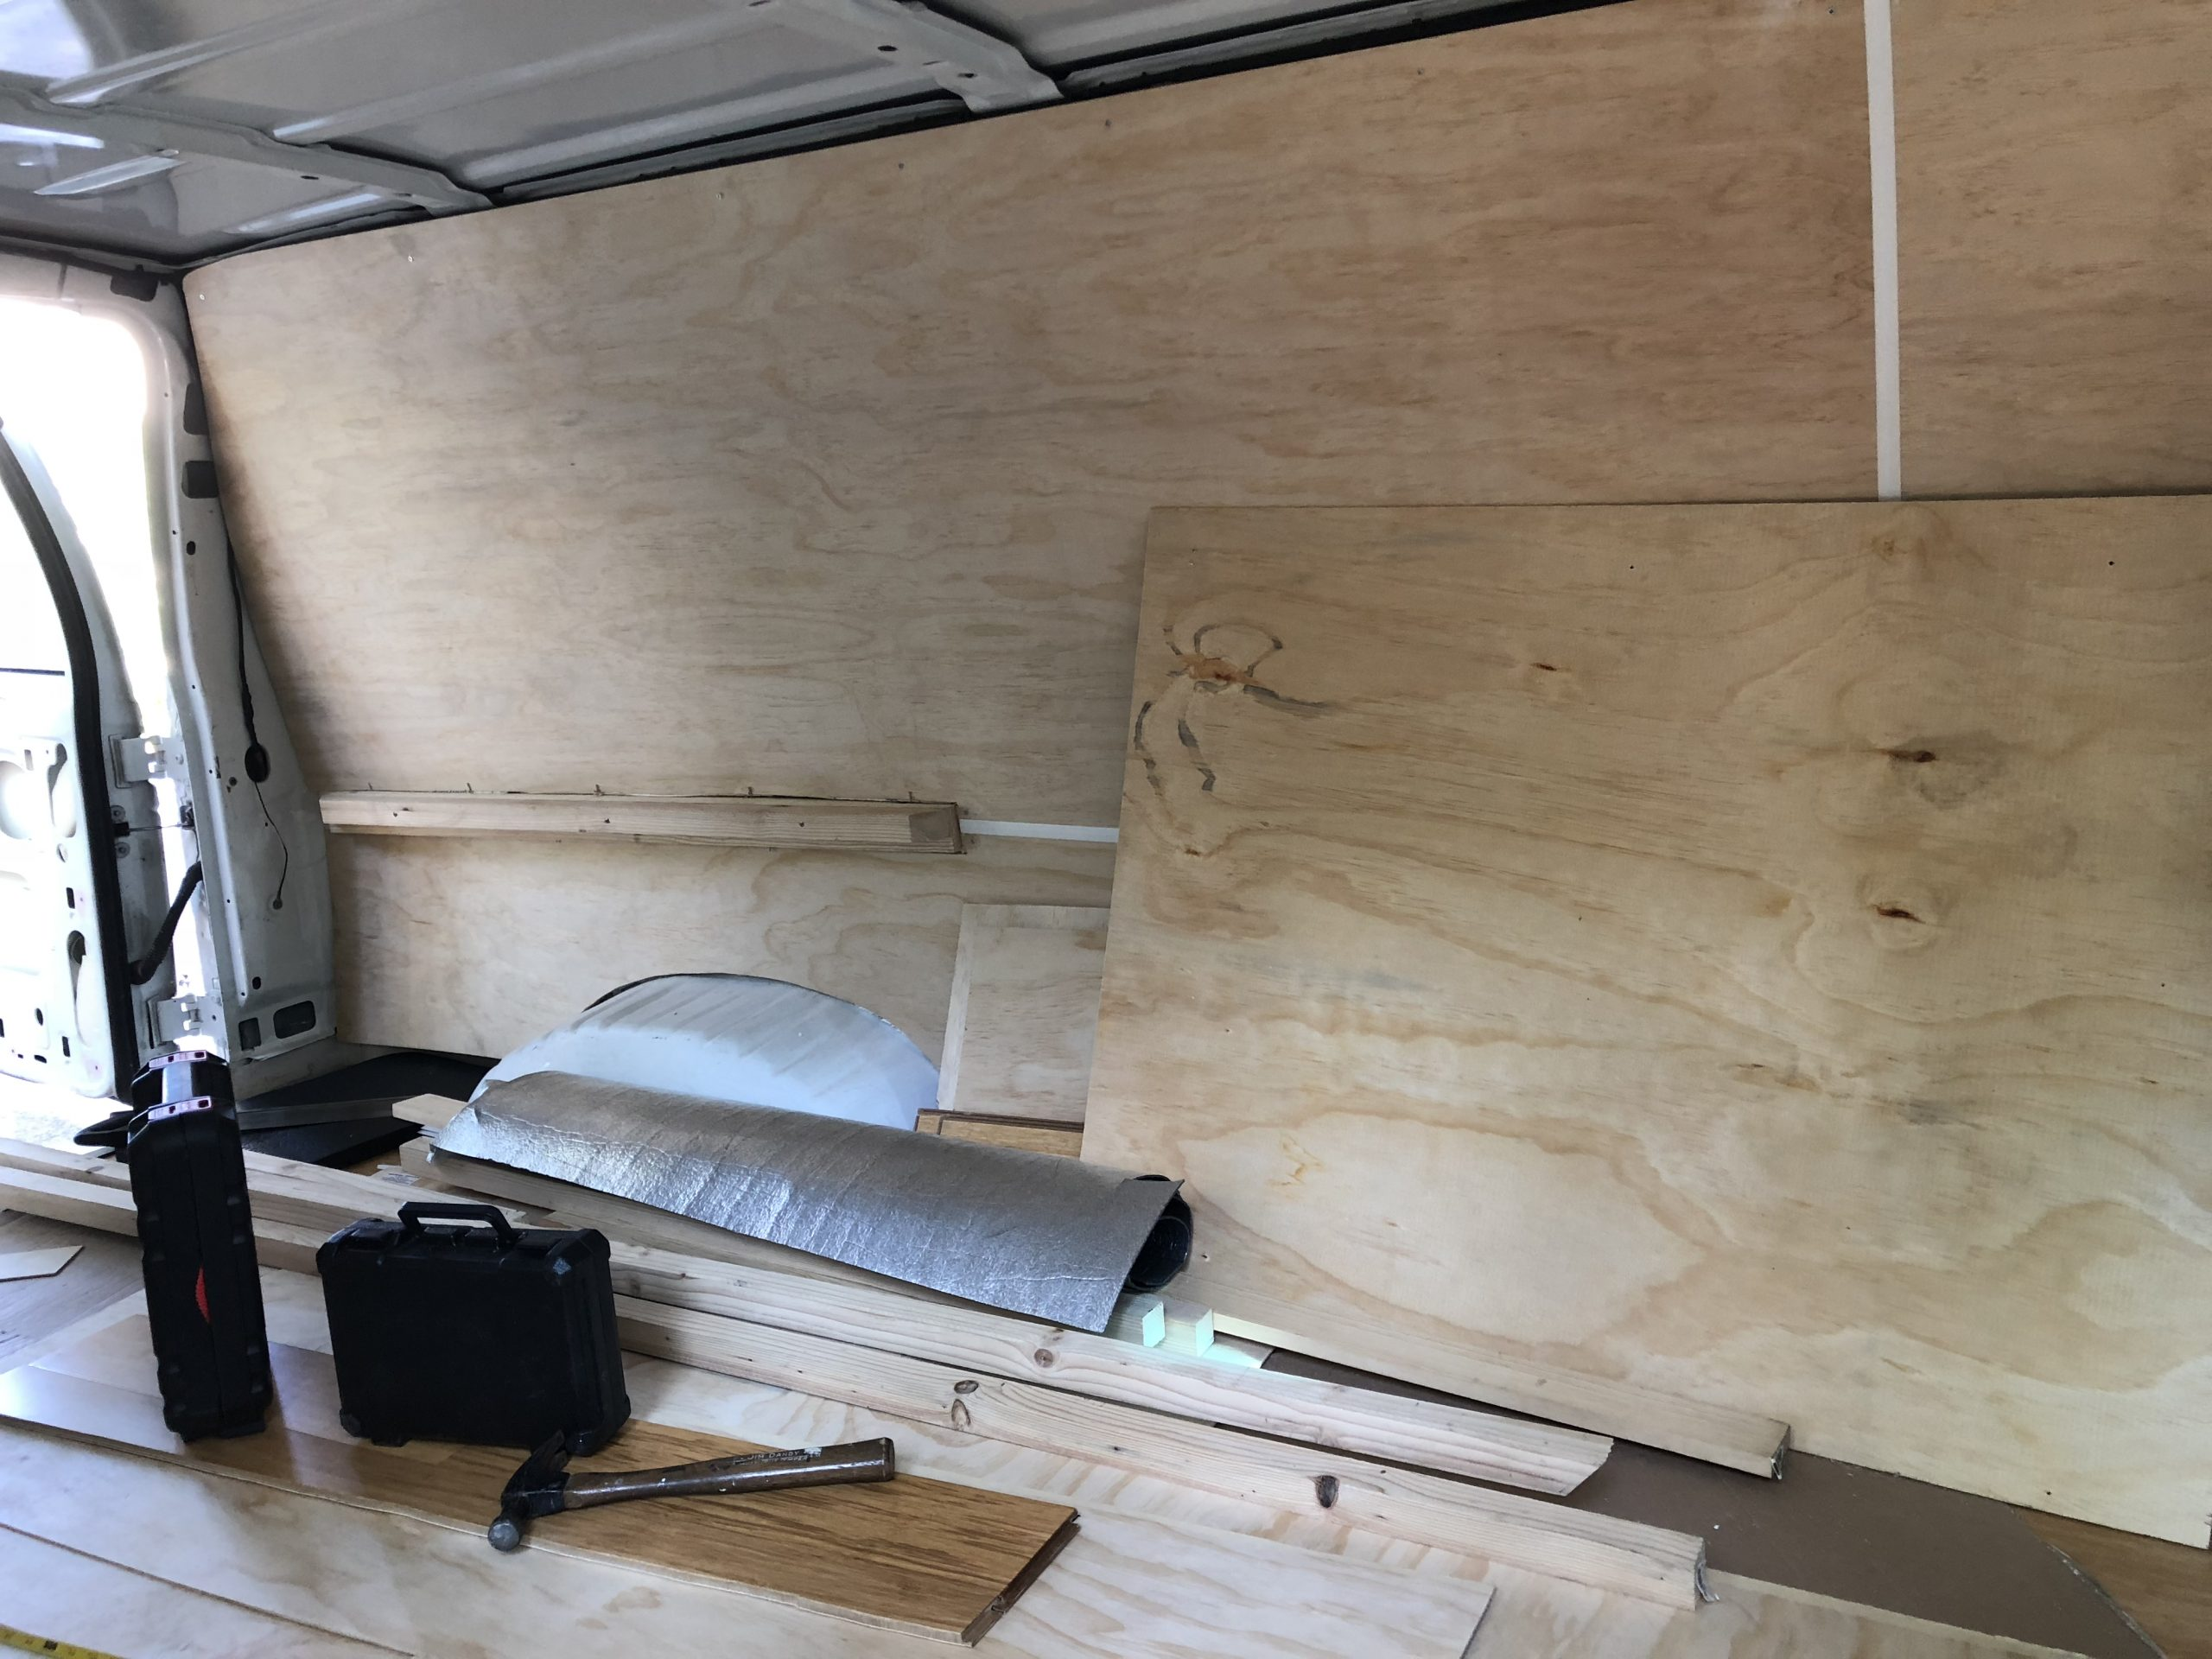 Building Out The Ford: The Walls